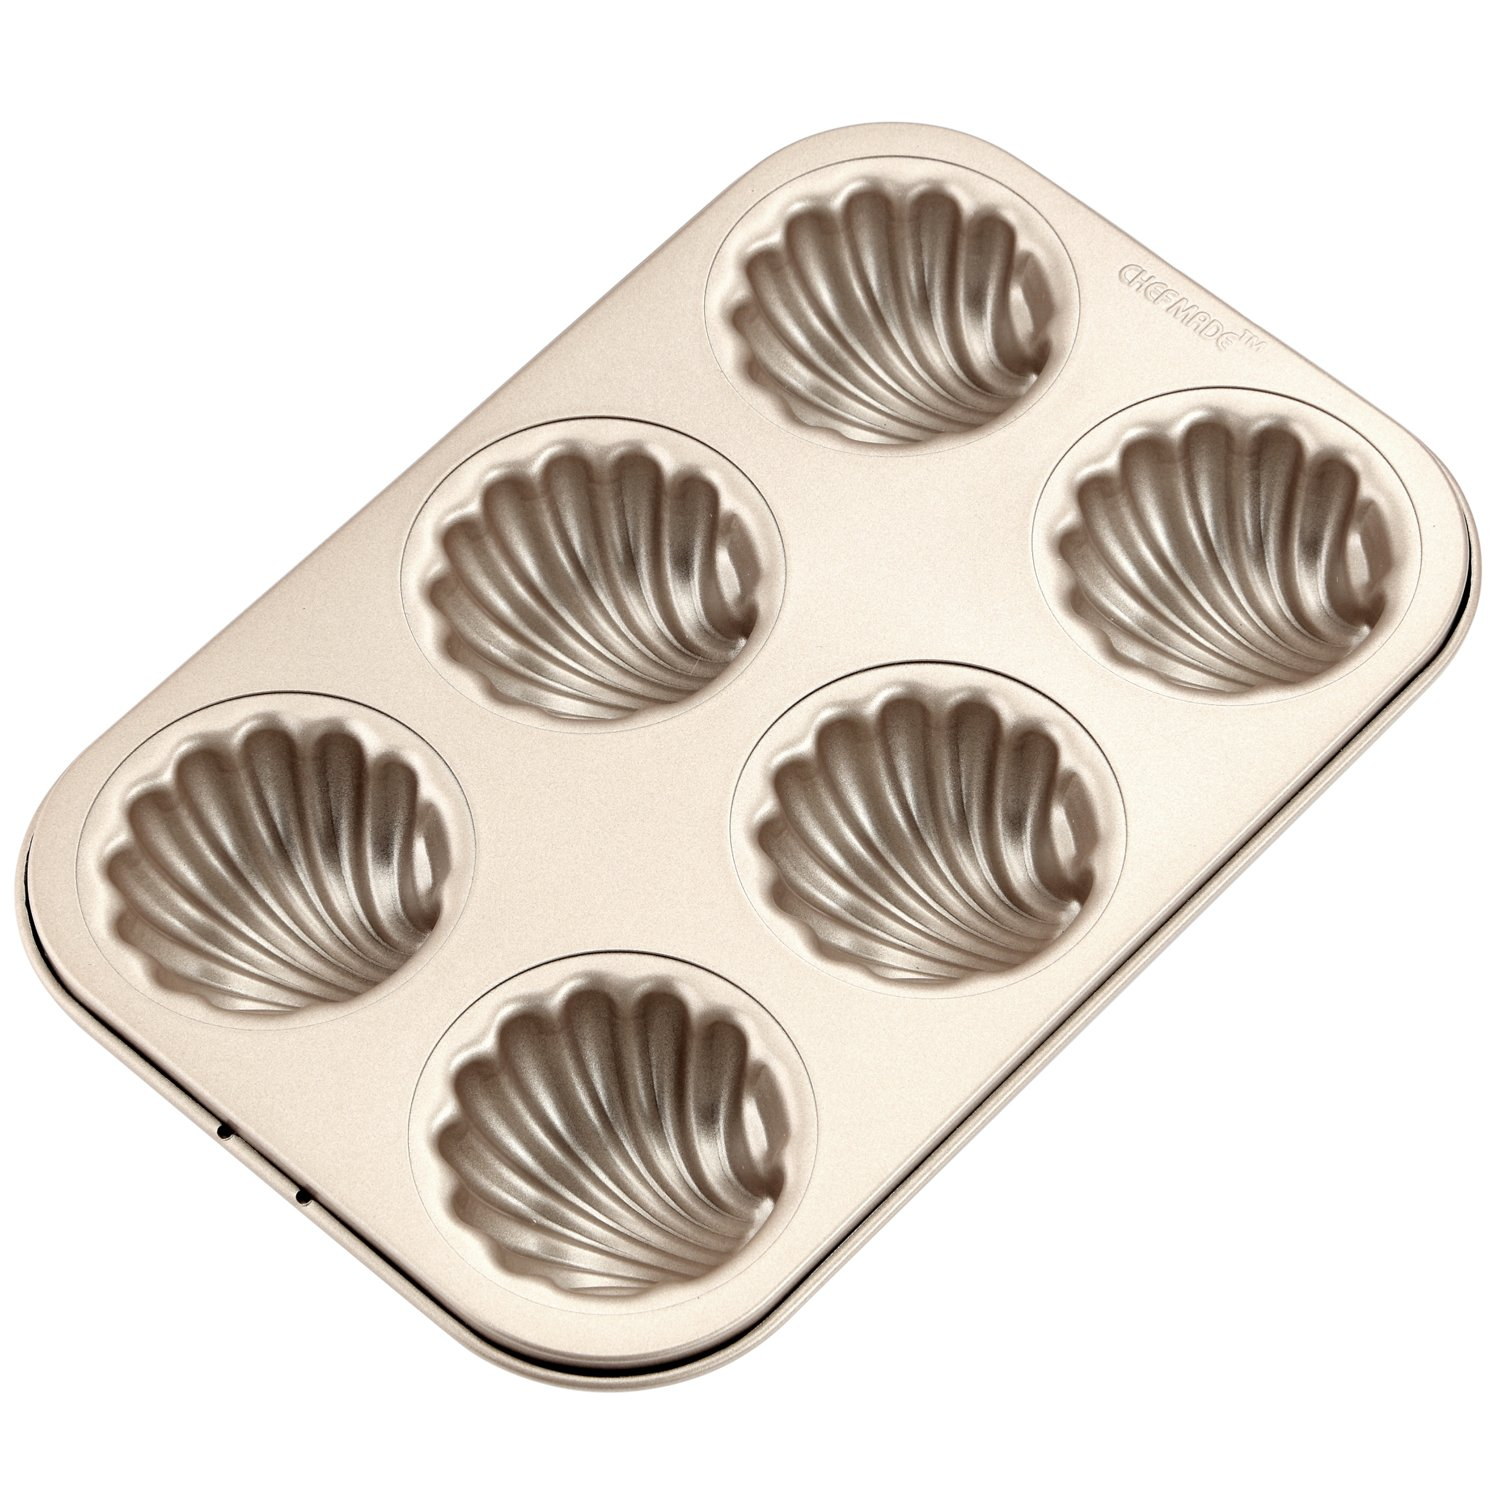 CHEFMADE 6-cavity-2.5'' Madeline Pan, Non-stick Shell-shaped Carbon Steel Madeleine Cake Pan, FDA Approved for Oven Baking (Champagne Gold)